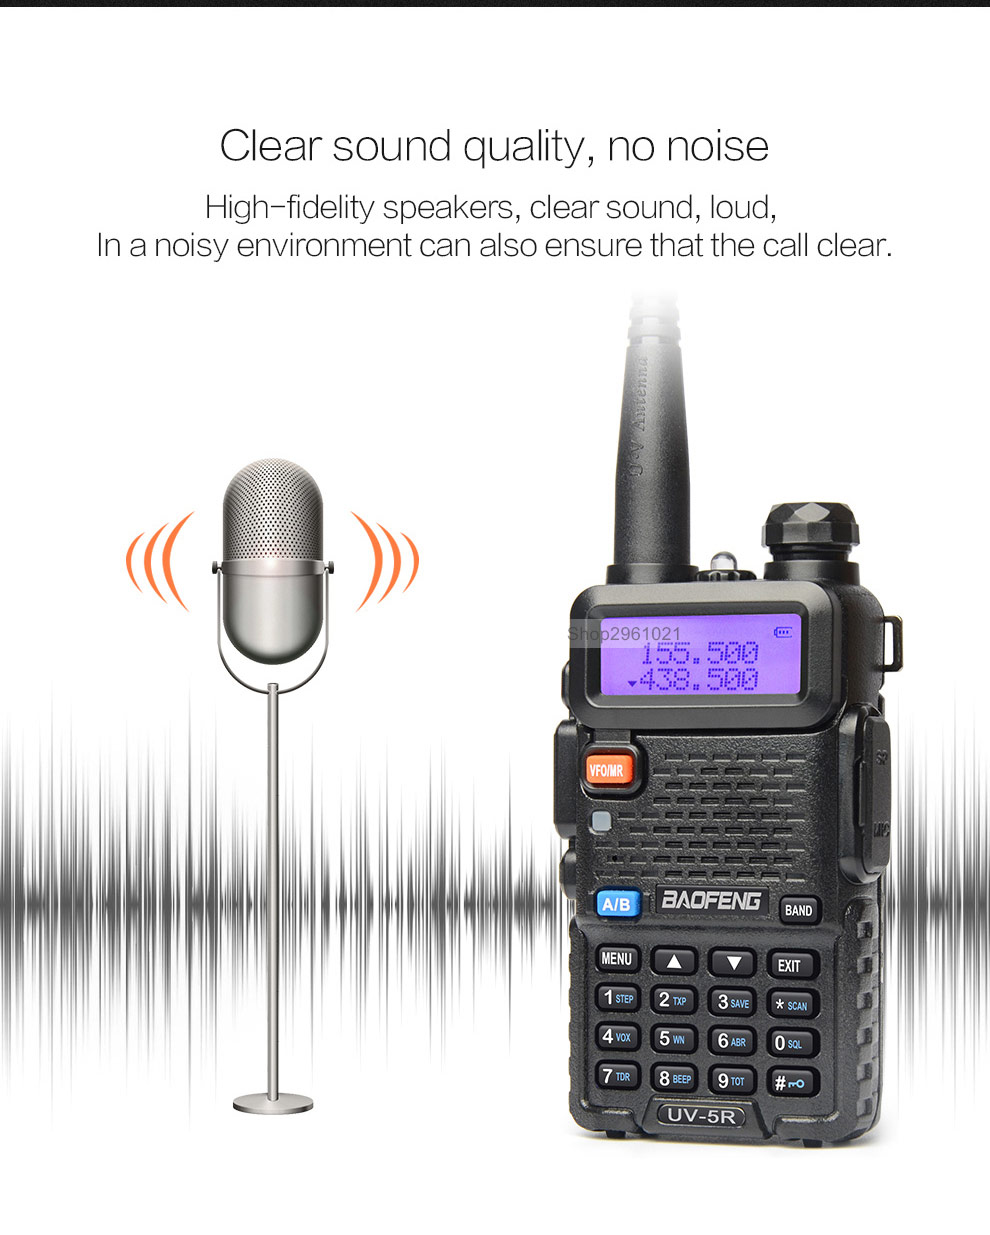 BAOFENG UV-5R Walkie Talkie 8W UHF VHF Dual Band 1800mah